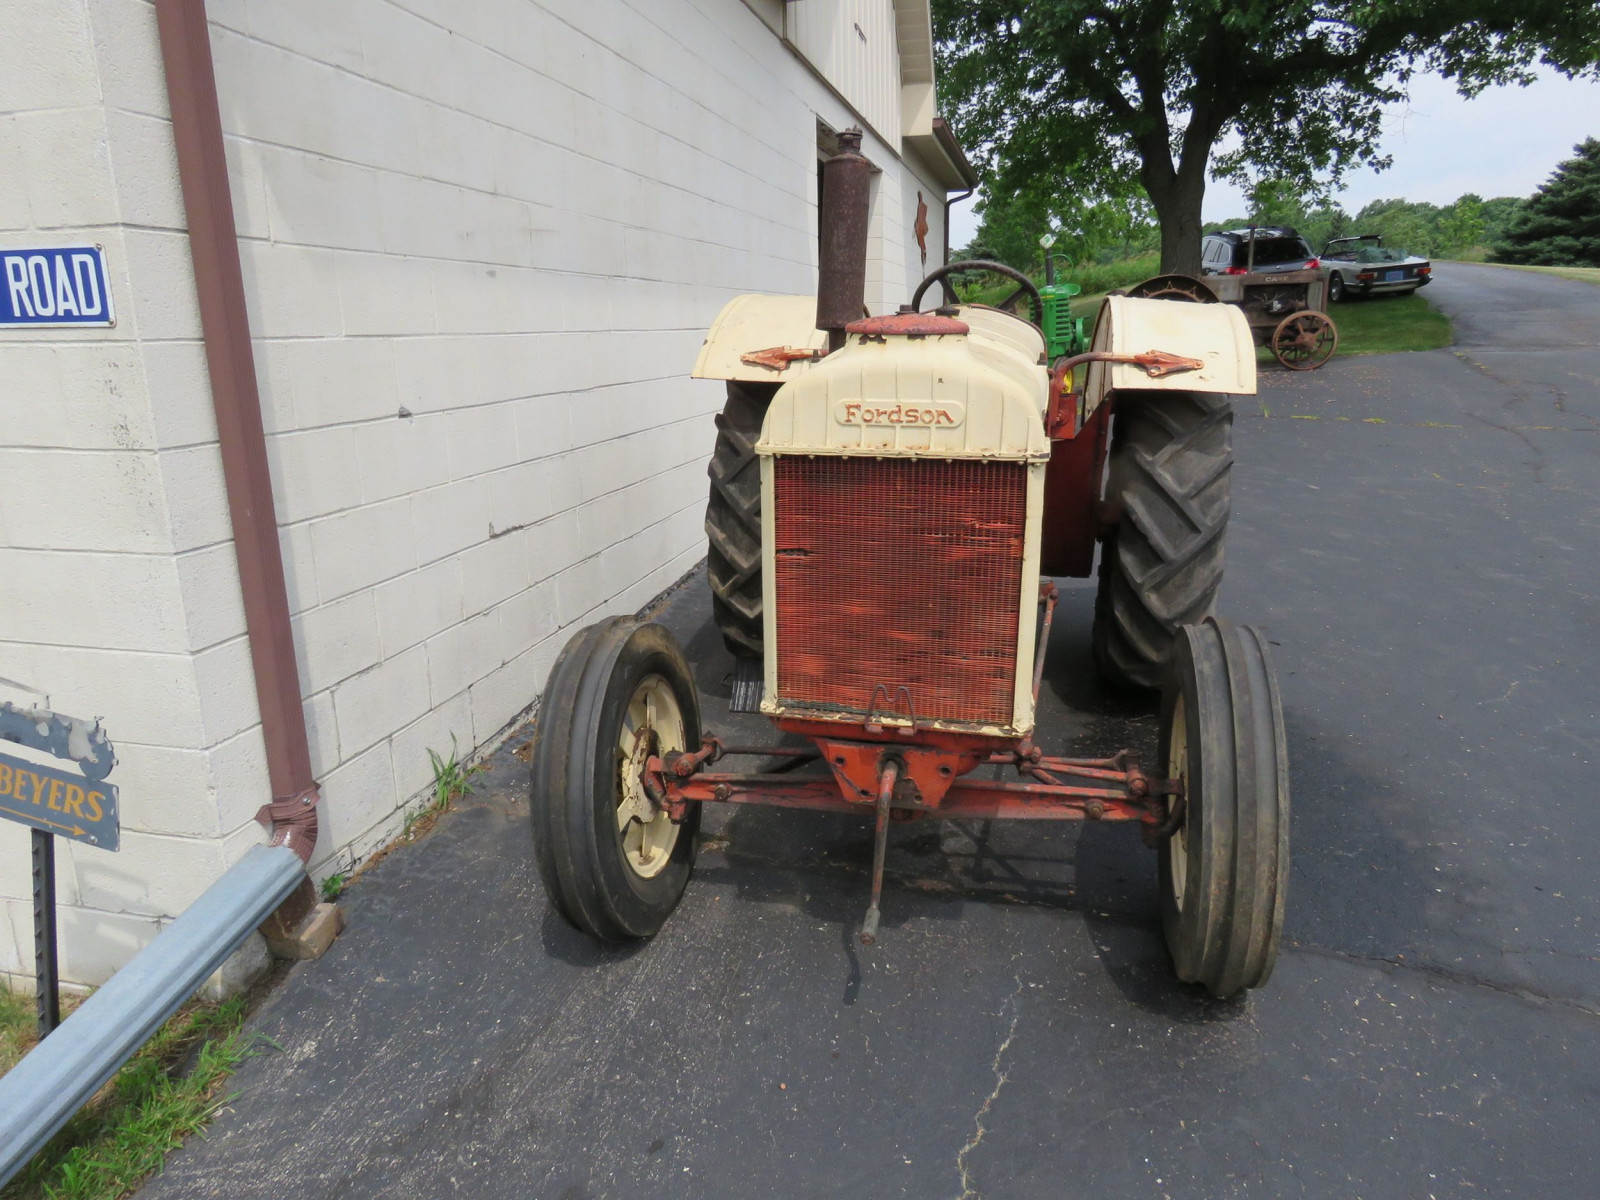 1936 Fordson N Tractor - Image 2